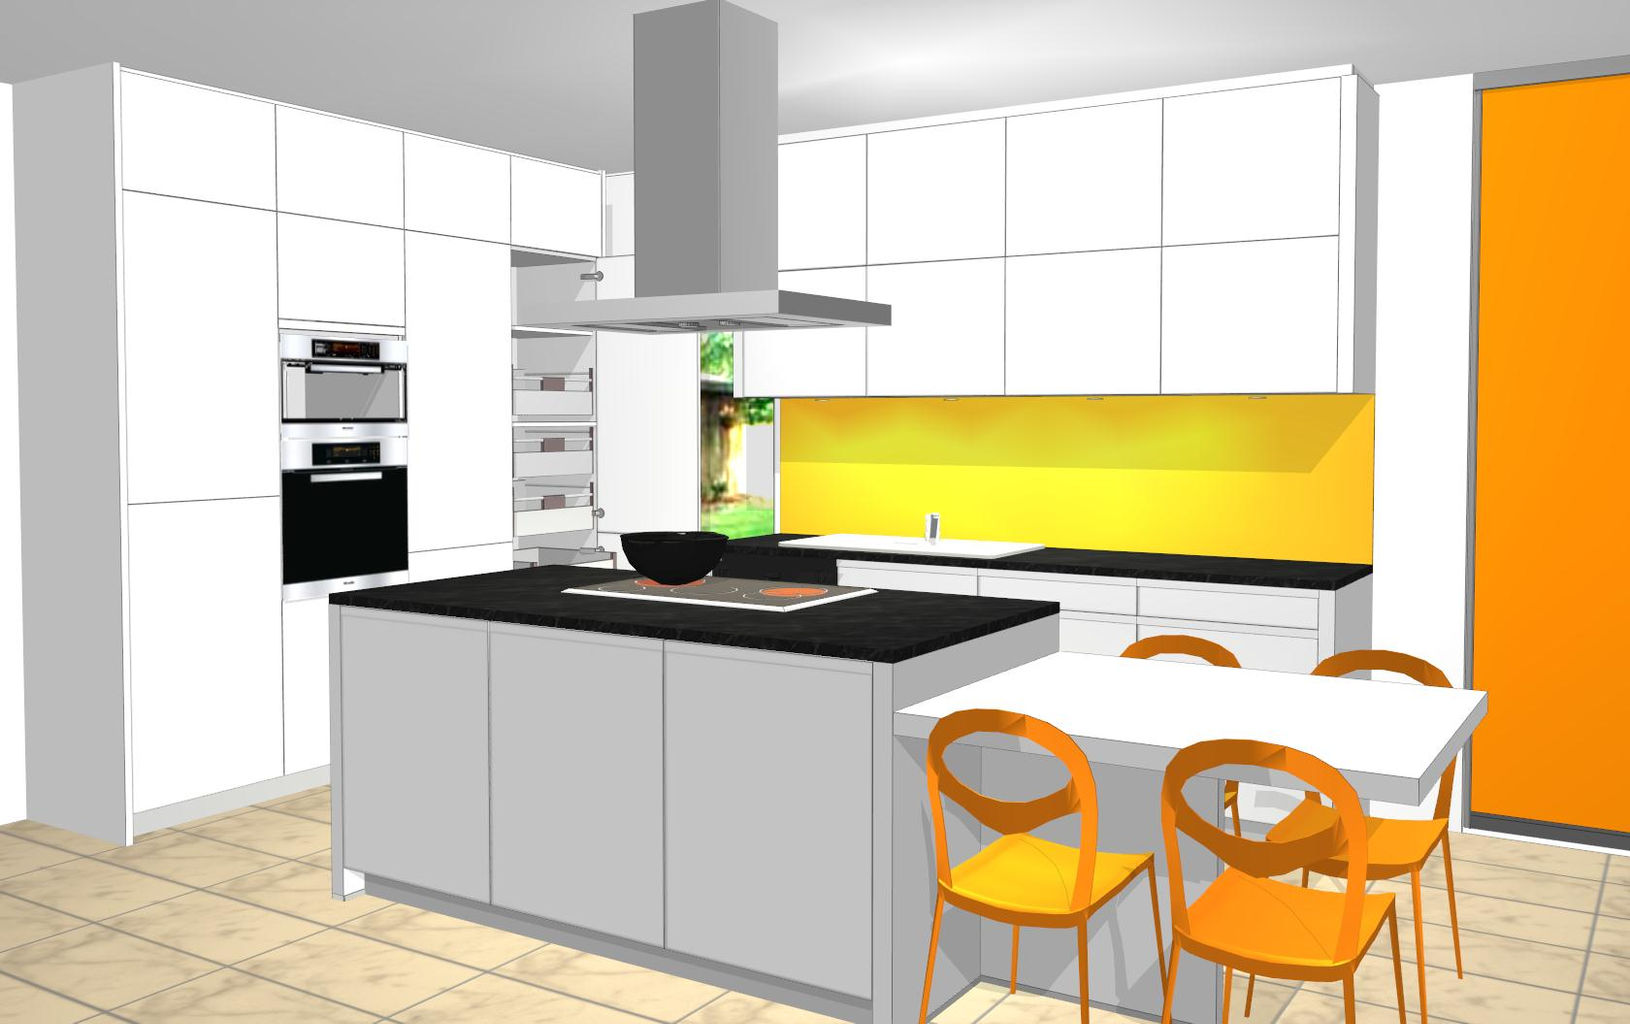 Progetto cucina moderna kw55 regardsdefemmes for Disegnare cucina 3d